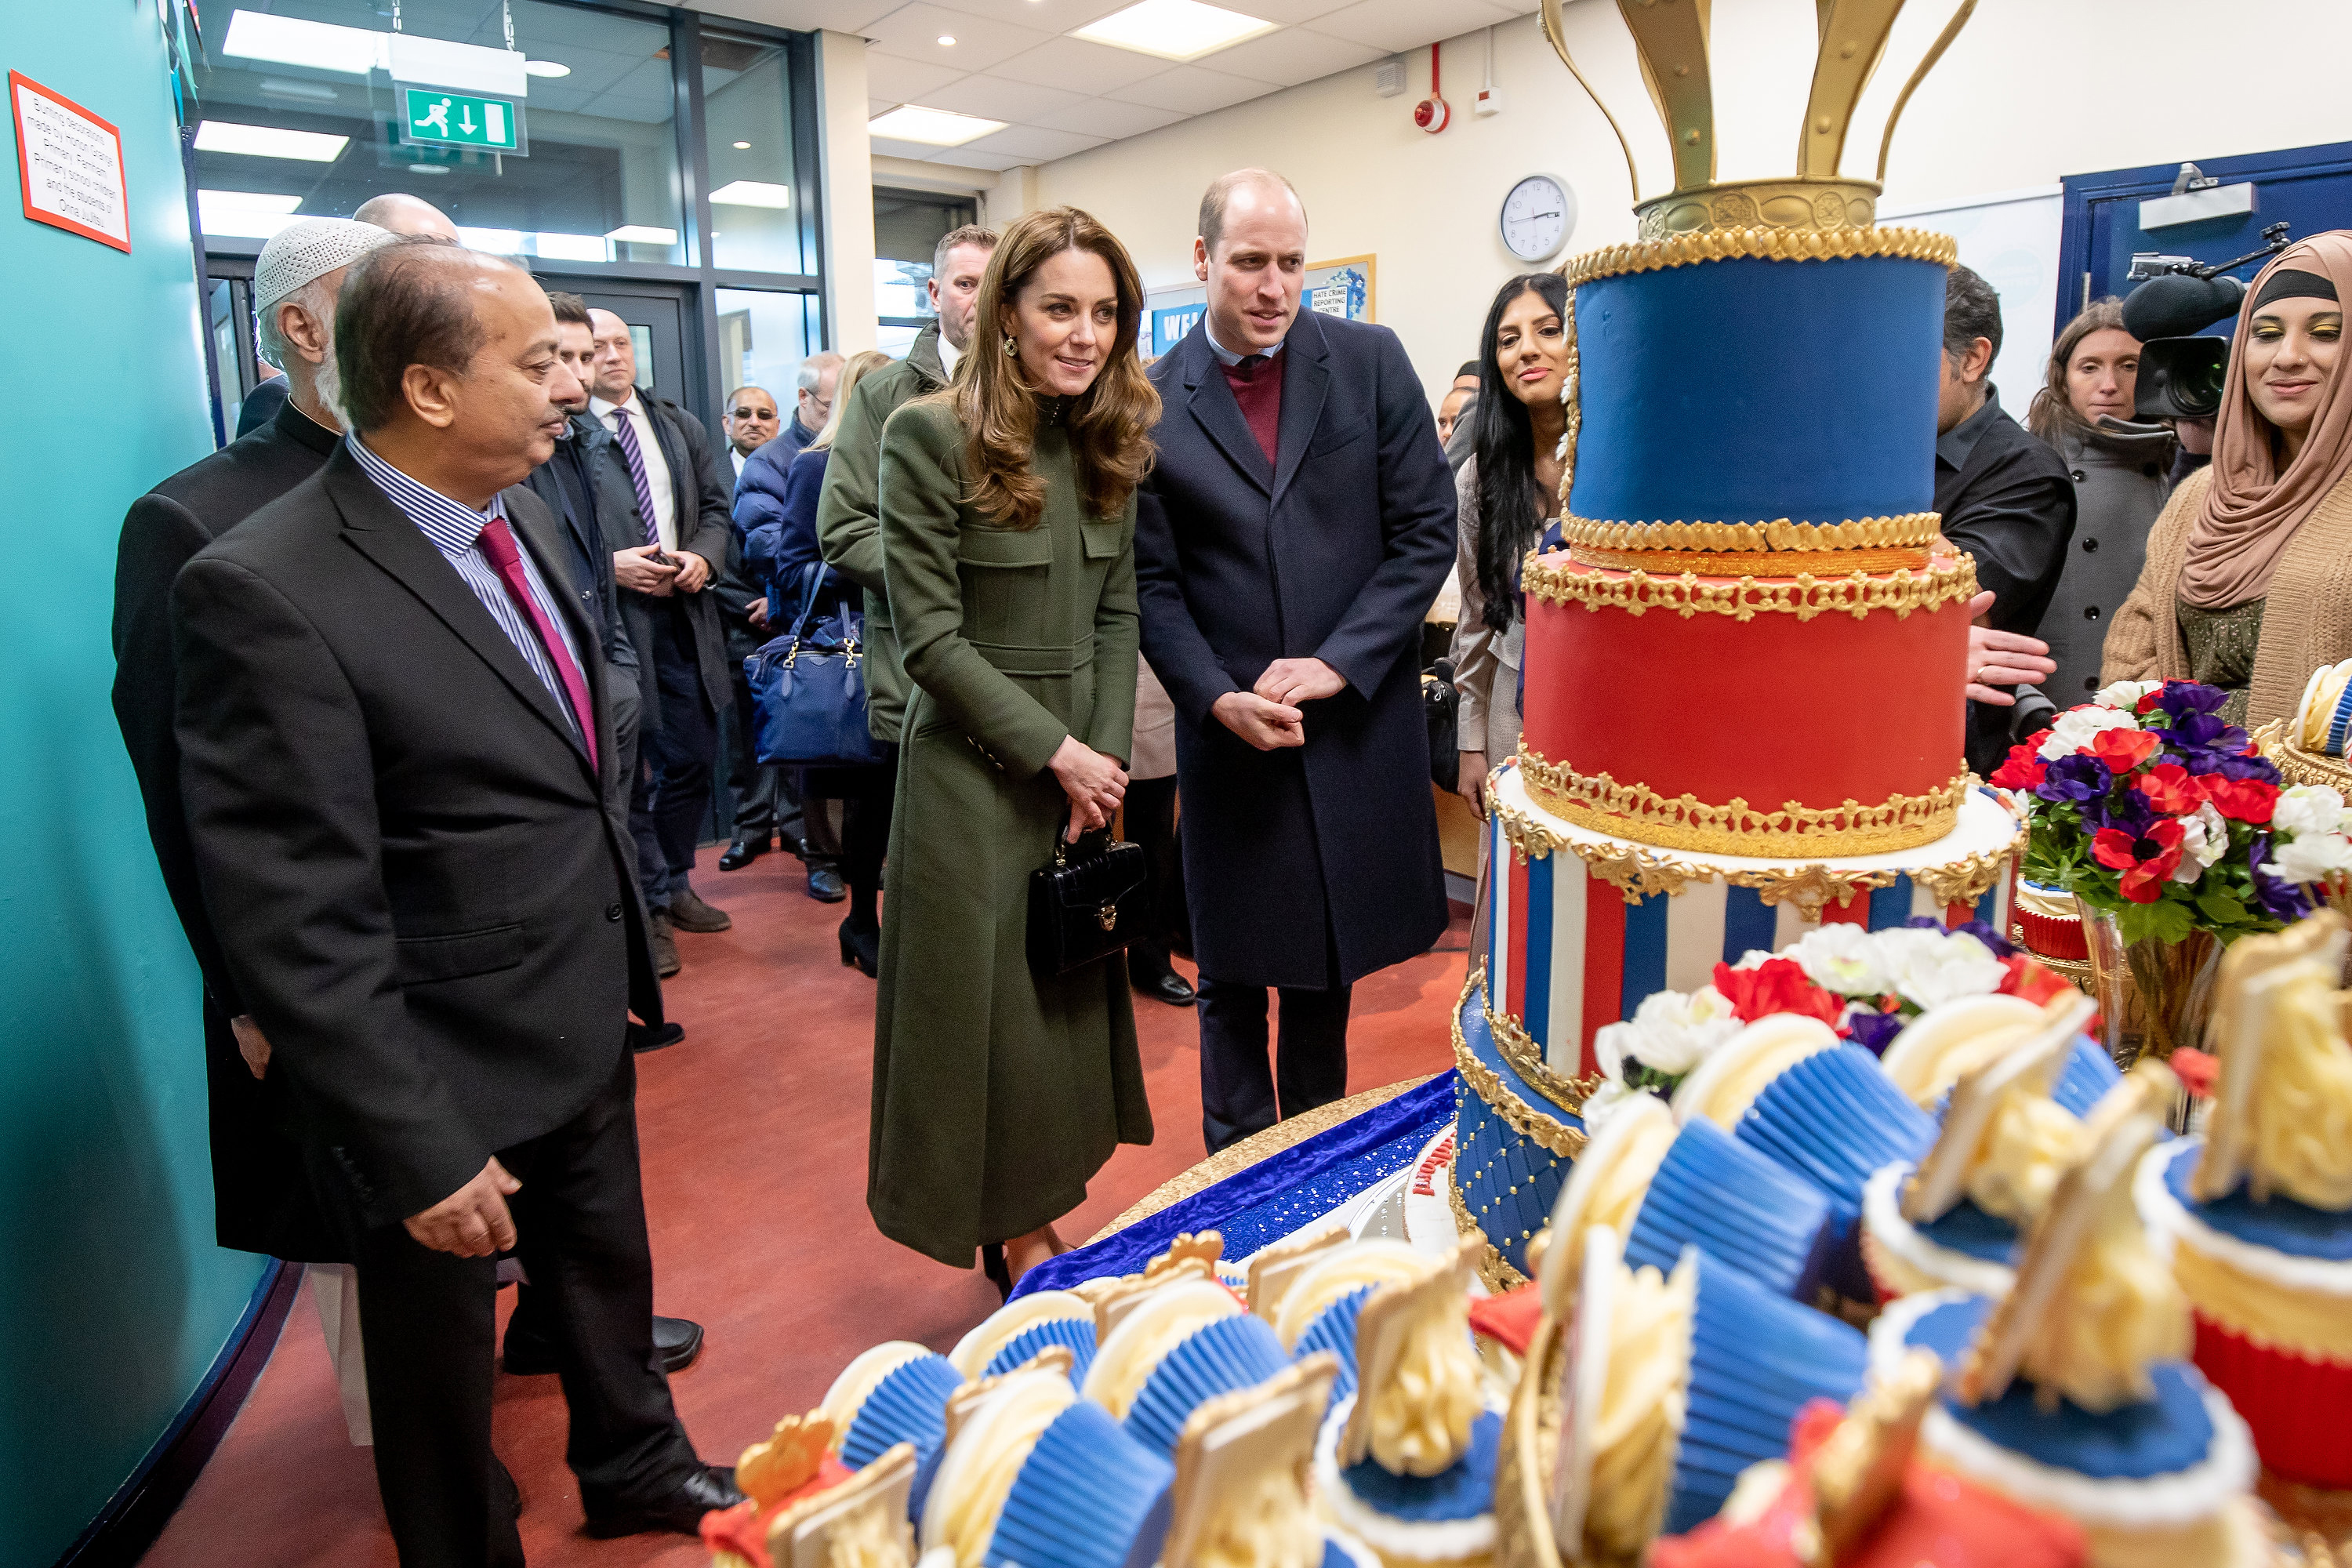 BRADFORD, ENGLAND - JANUARY 15: Prince William, Duke of Cambridge and Catherine, Duchess of Cambridge inspect cakes as they visit the Khidmat Centre on January 15, 2020 in Bradford, United Kingdom. (Photo by Charlotte Graham - WPA Pool/Getty Images)